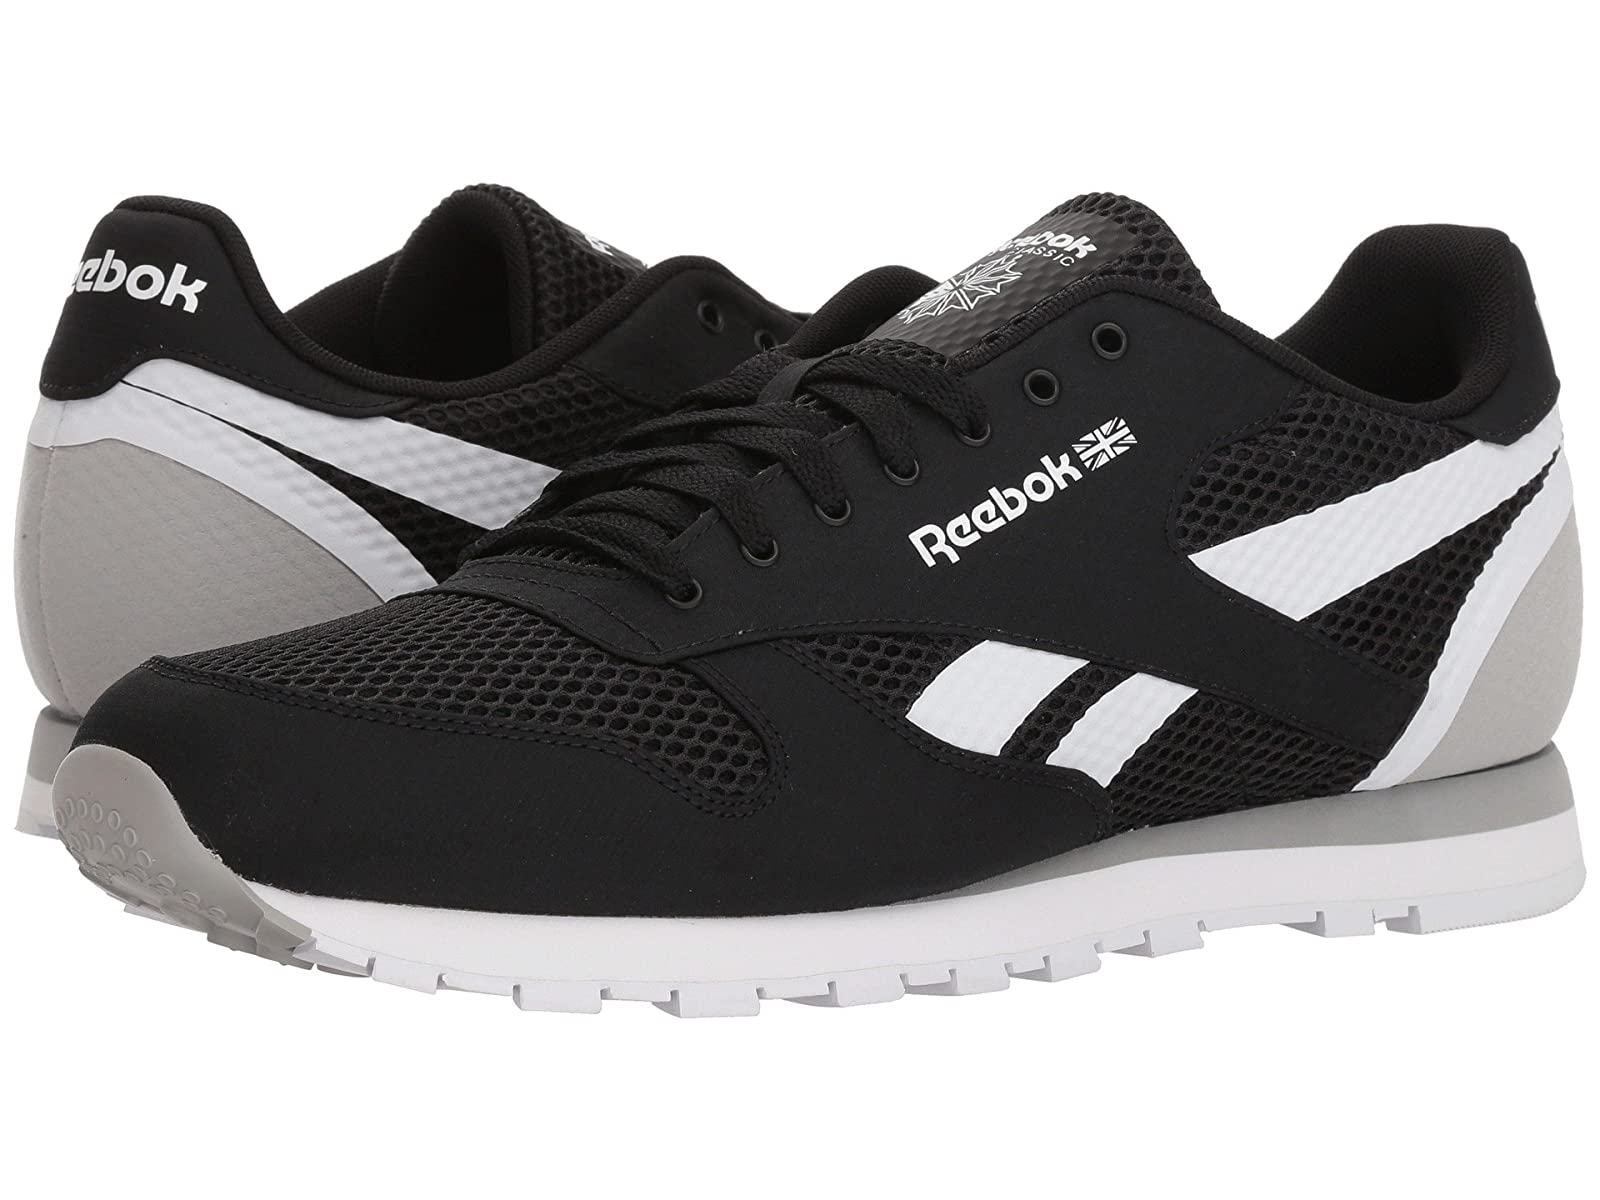 Reebok Lifestyle Classic Leather MVSAtmospheric grades have affordable shoes